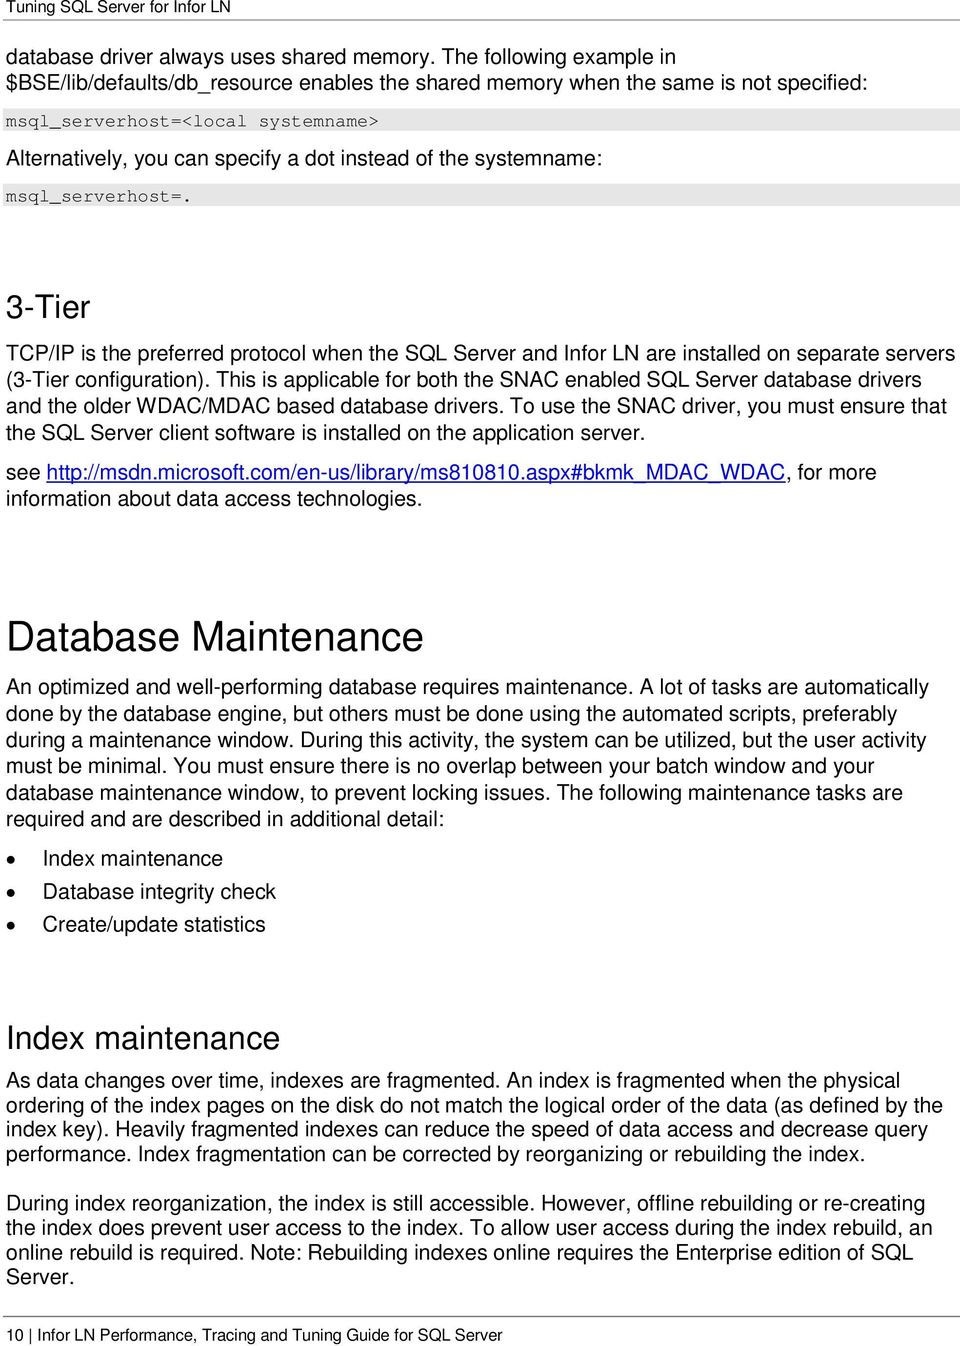 Infor LN Performance, Tracing, and Tuning Guide for SQL Server - PDF